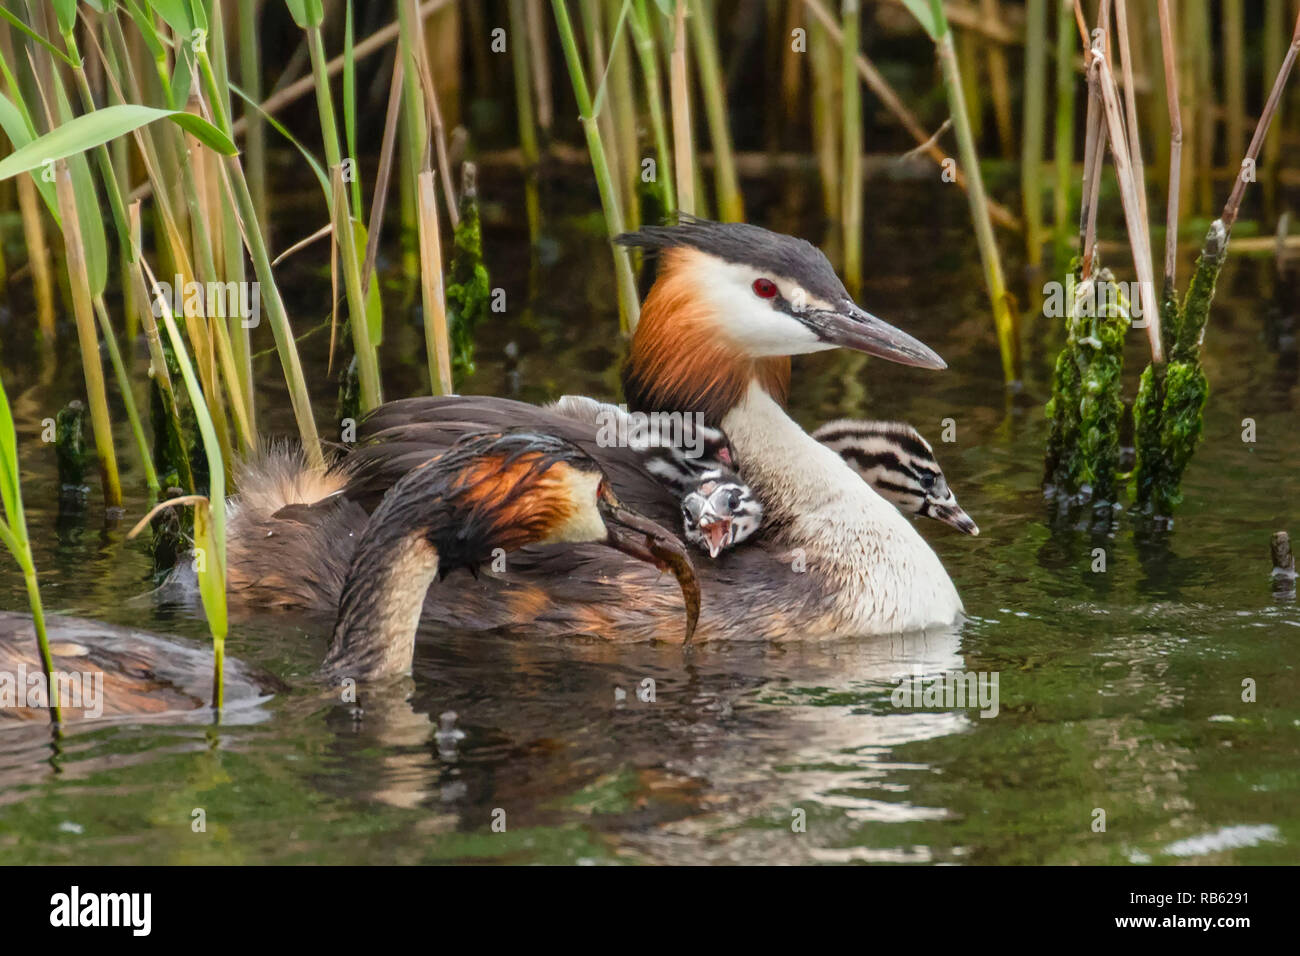 Great crested grebes (Podiceps cristatus) feeding young in IJ river. Amsterdam, The Netherlands. Stock Photo